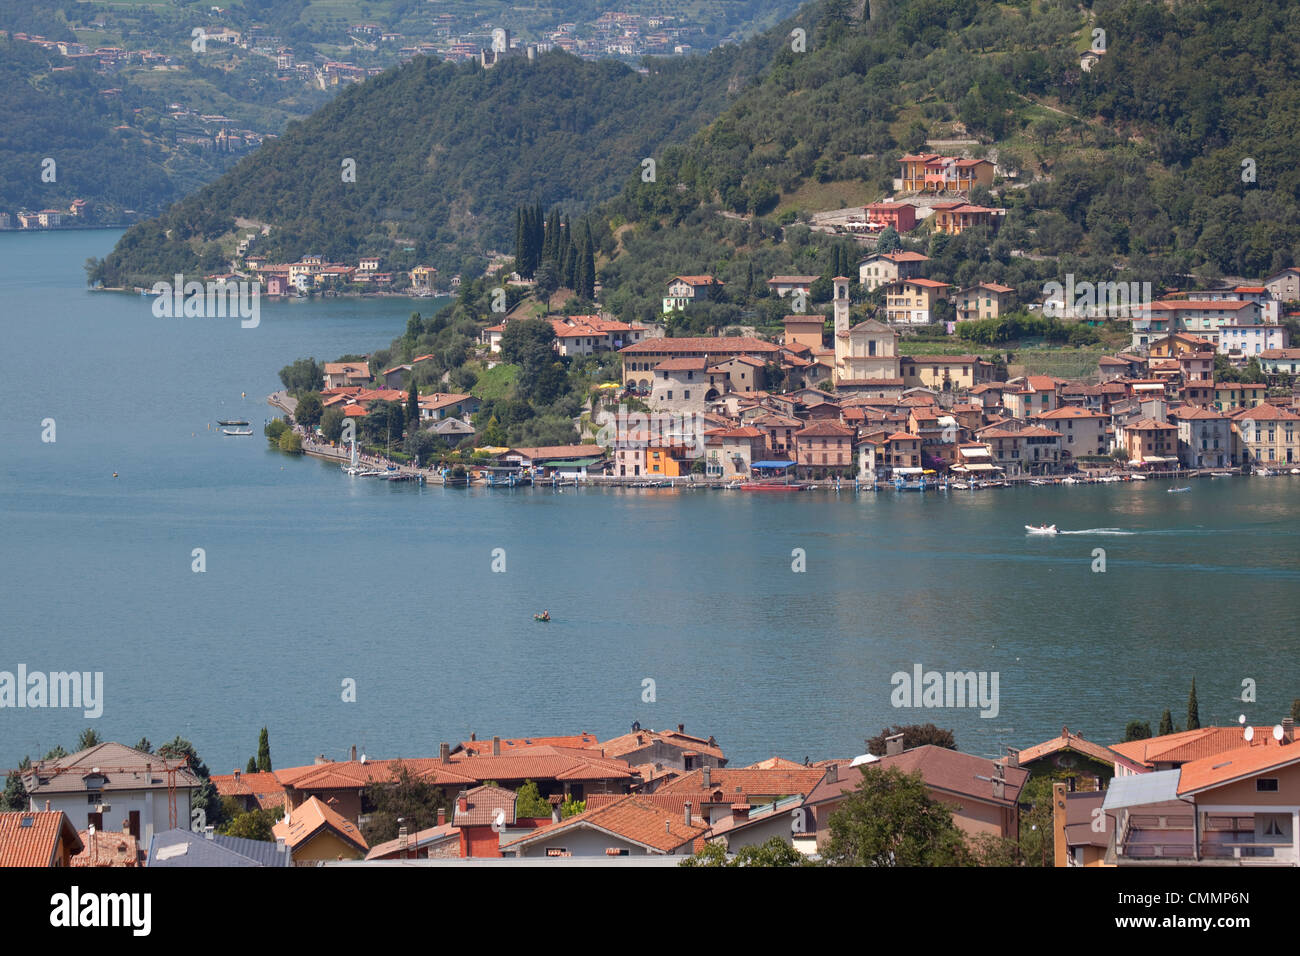 View of Monte Isola from near Sulzano, Lake Iseo, Lombardy, Italian Lakes, Italy, Europe - Stock Image